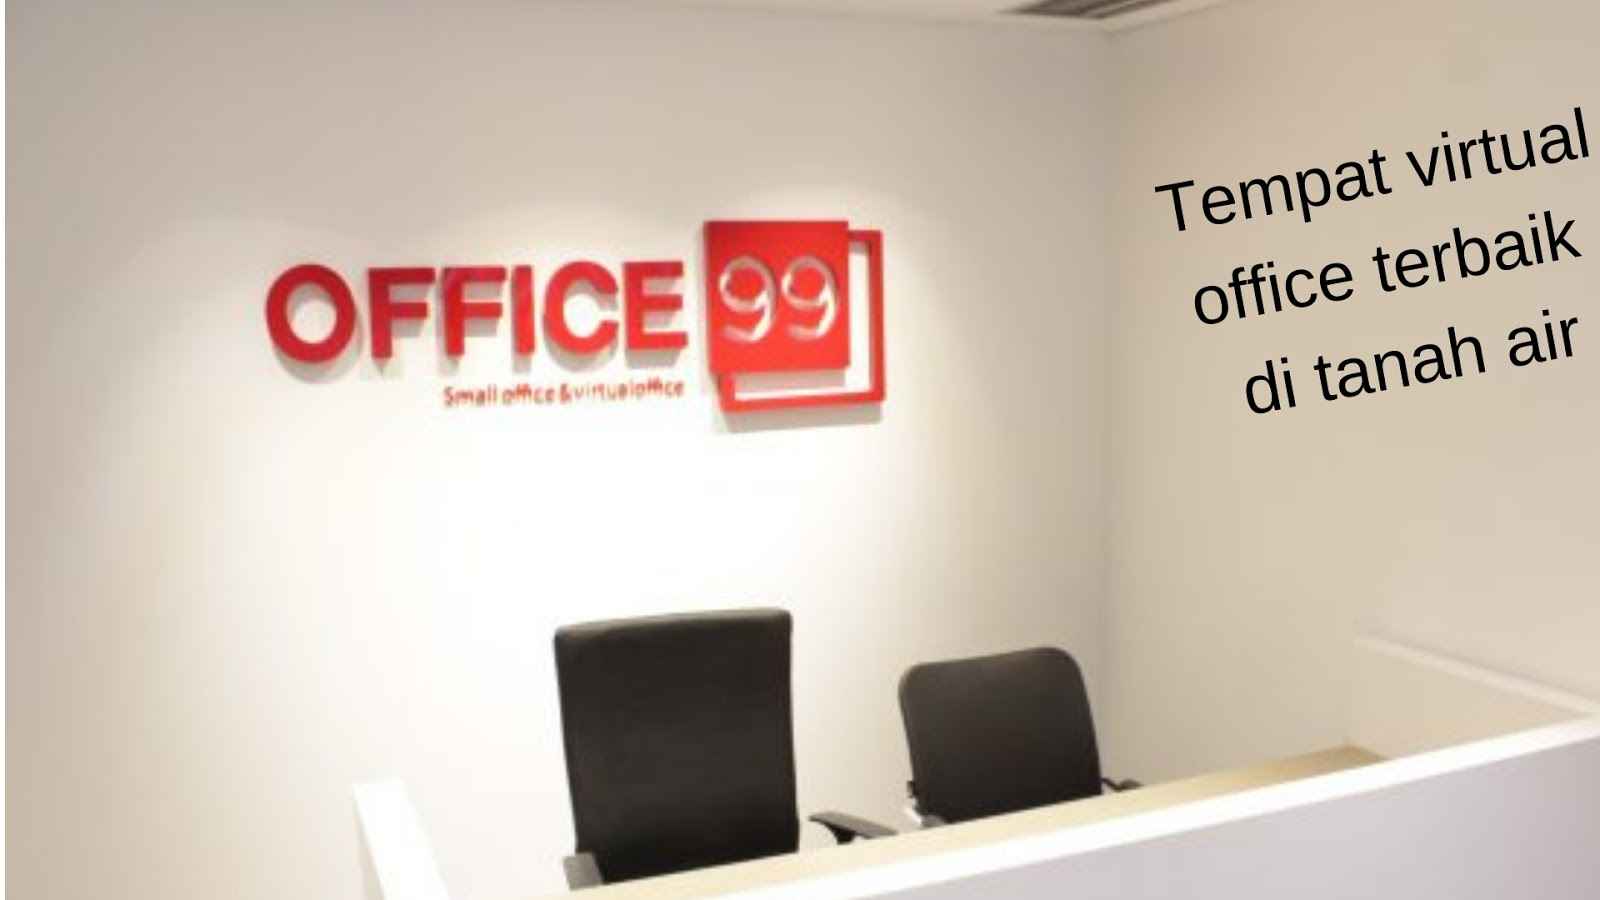 Virtual Office Terbaik Office99